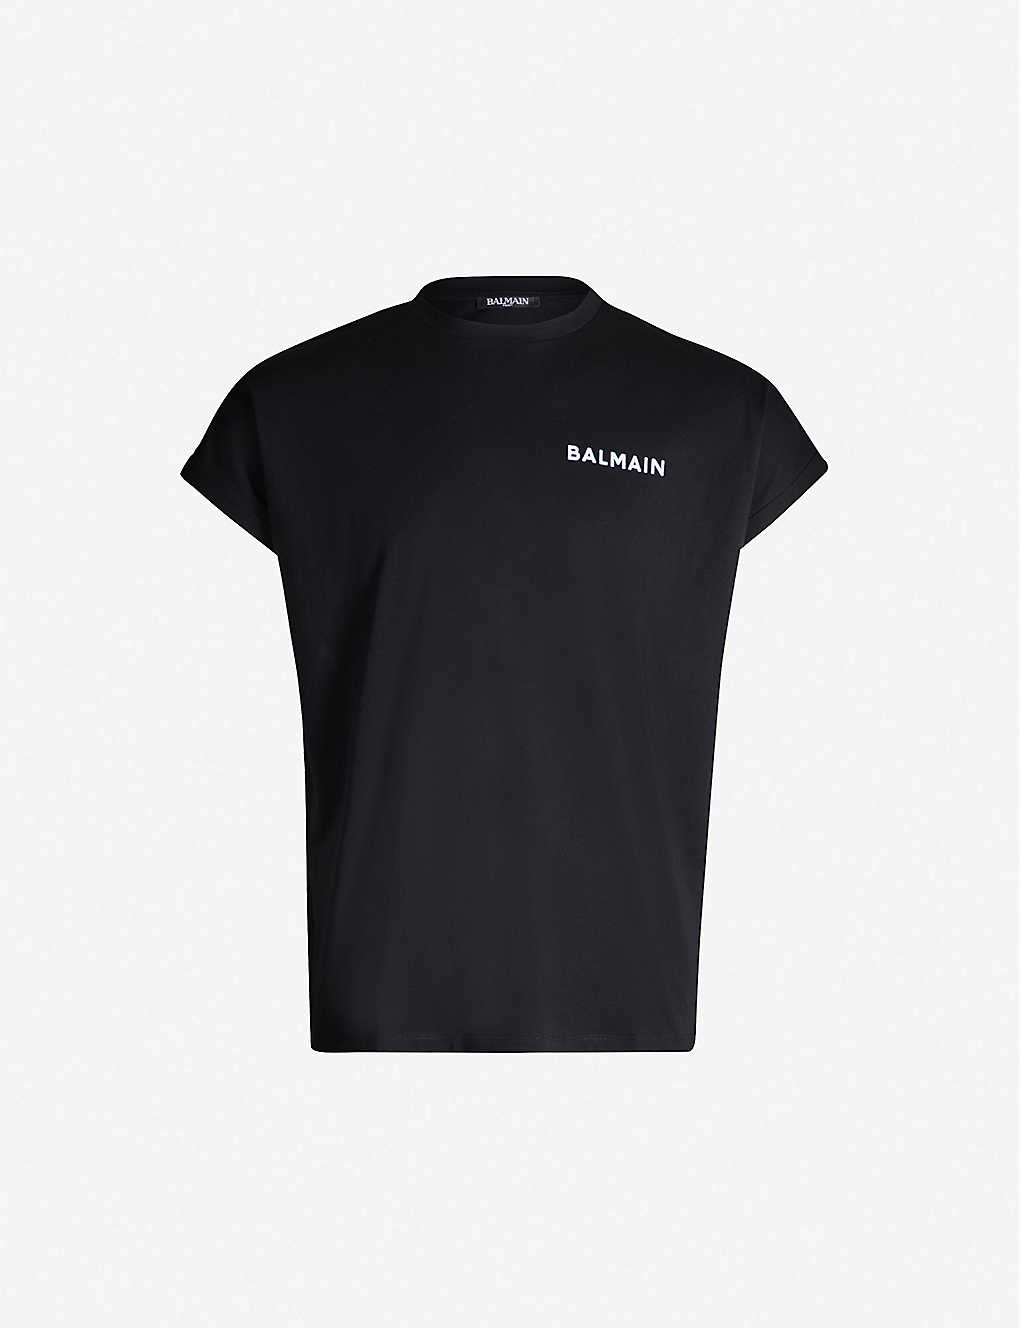 Balmain T-shirt at Selfridges - £170 - Style up or style down - the choices are endless